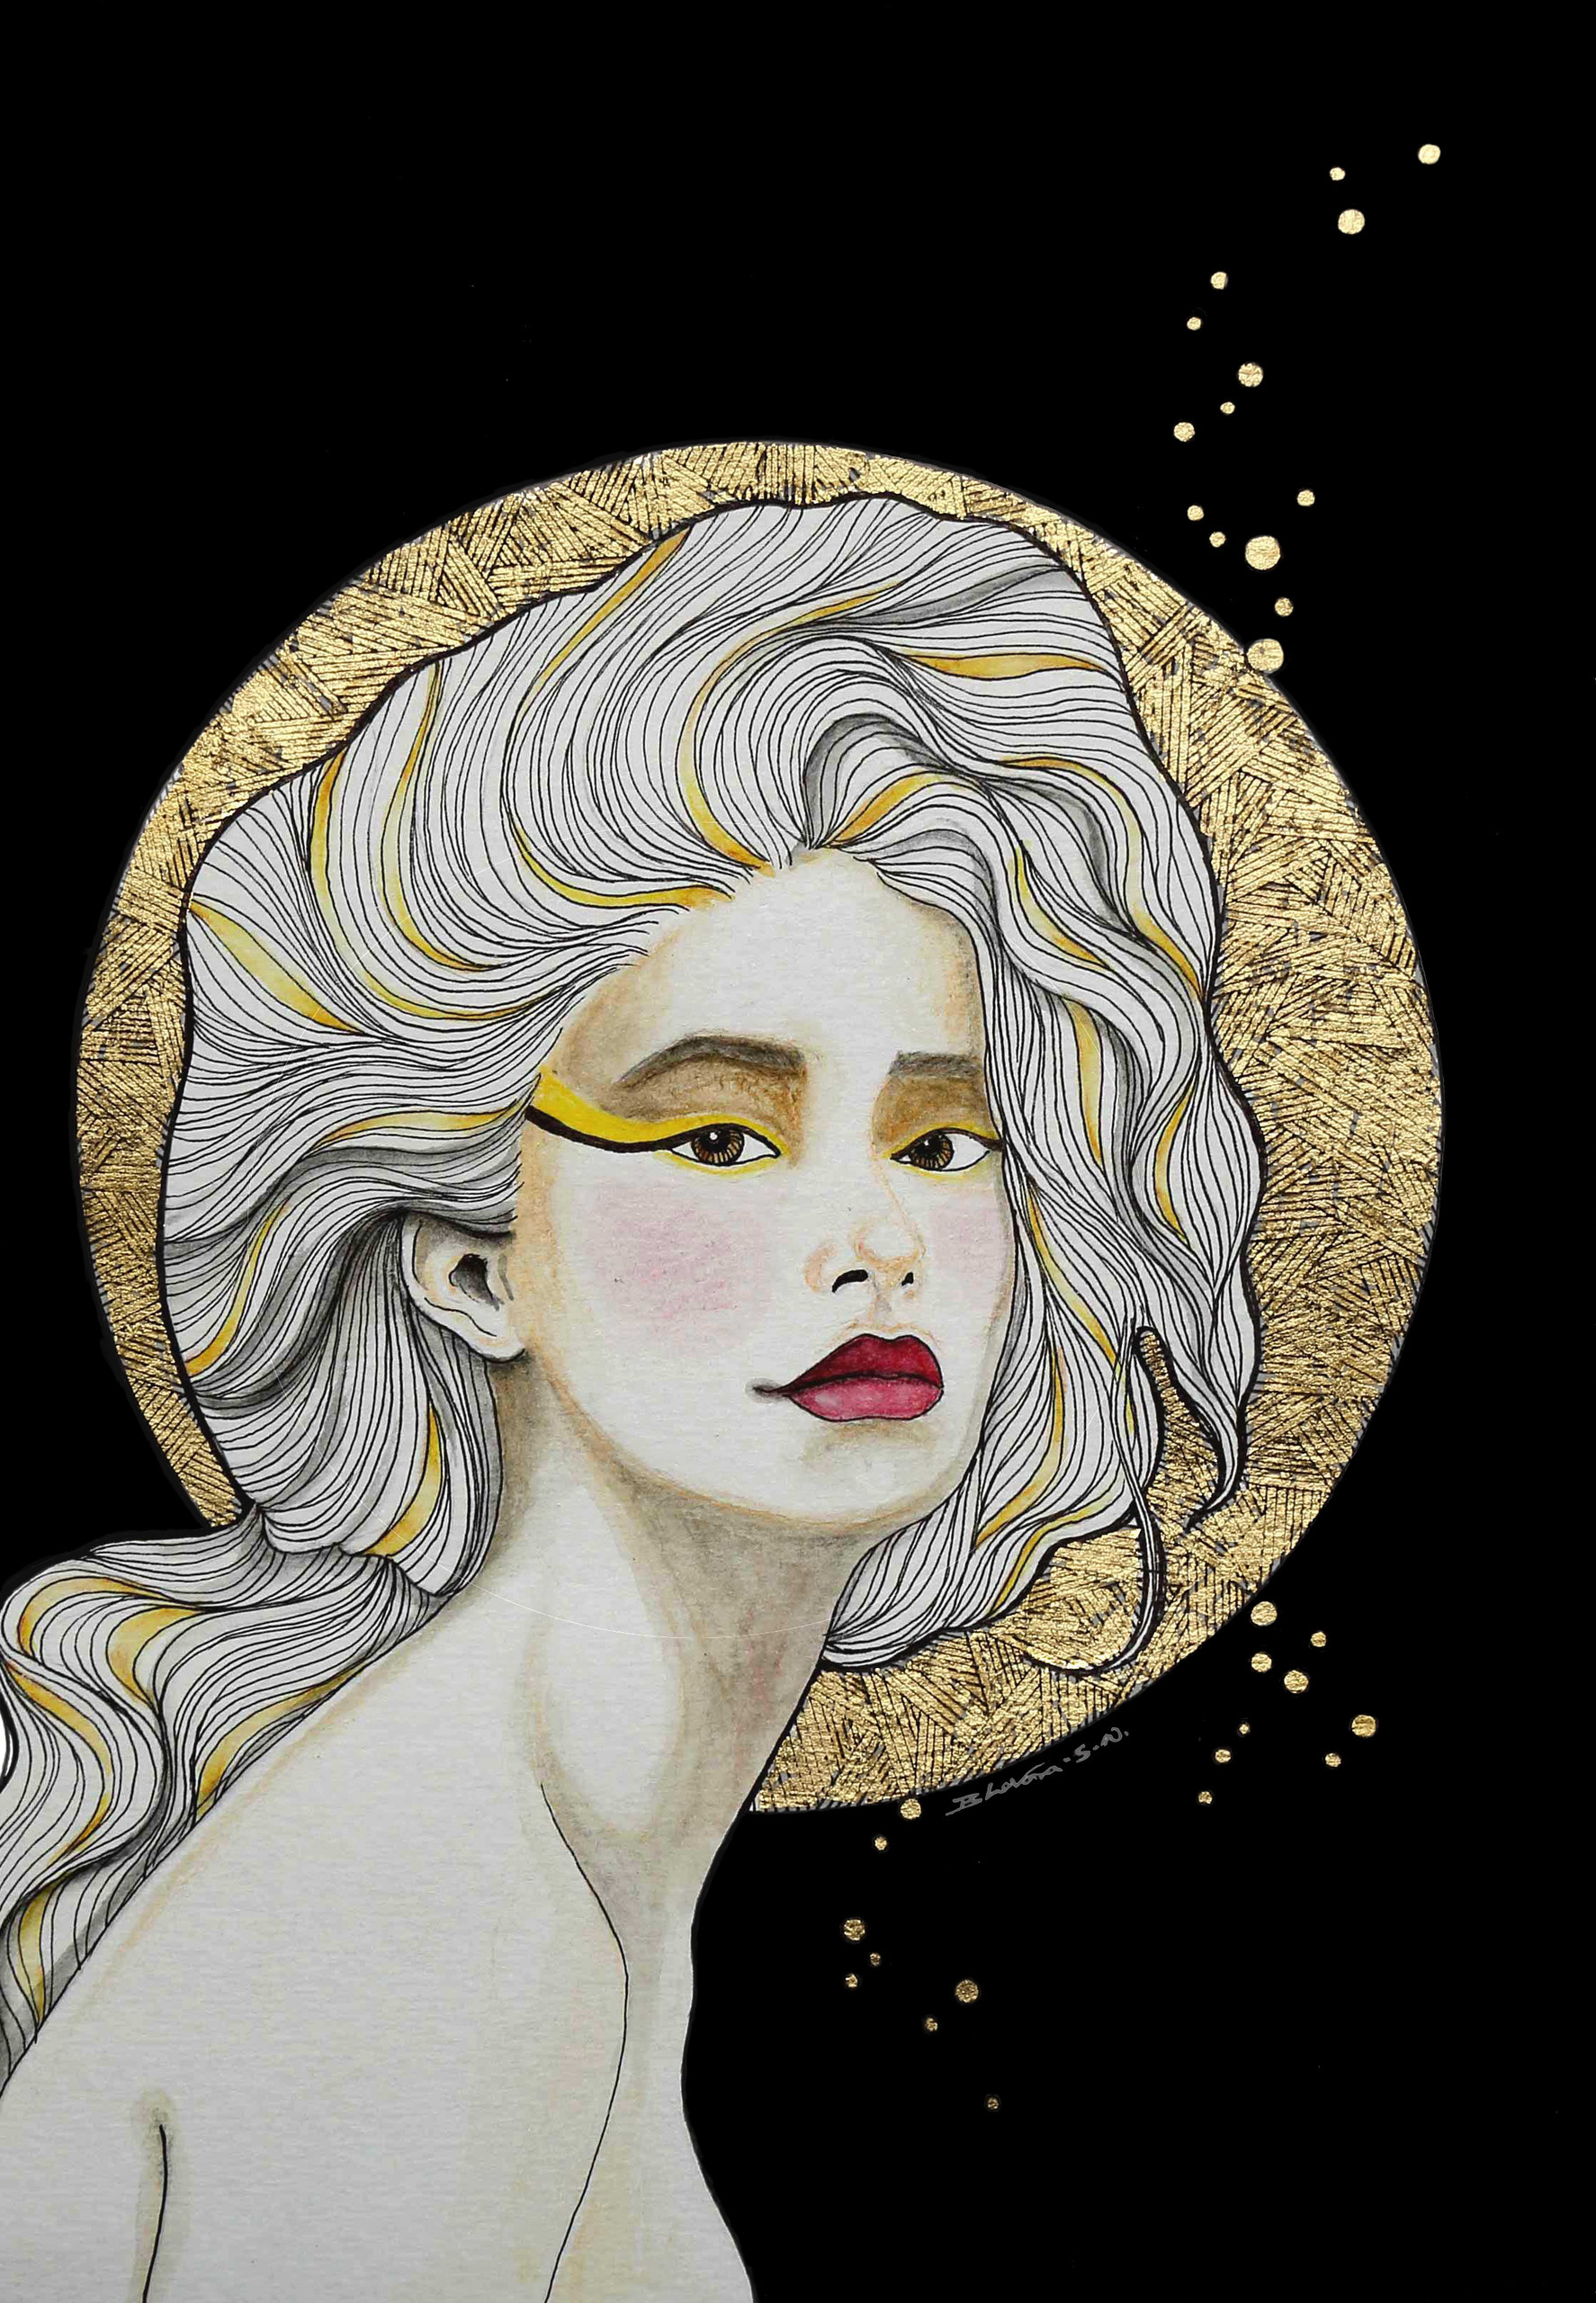 Flavia - lady, illustration, goldleaf - bhavanasn | ello